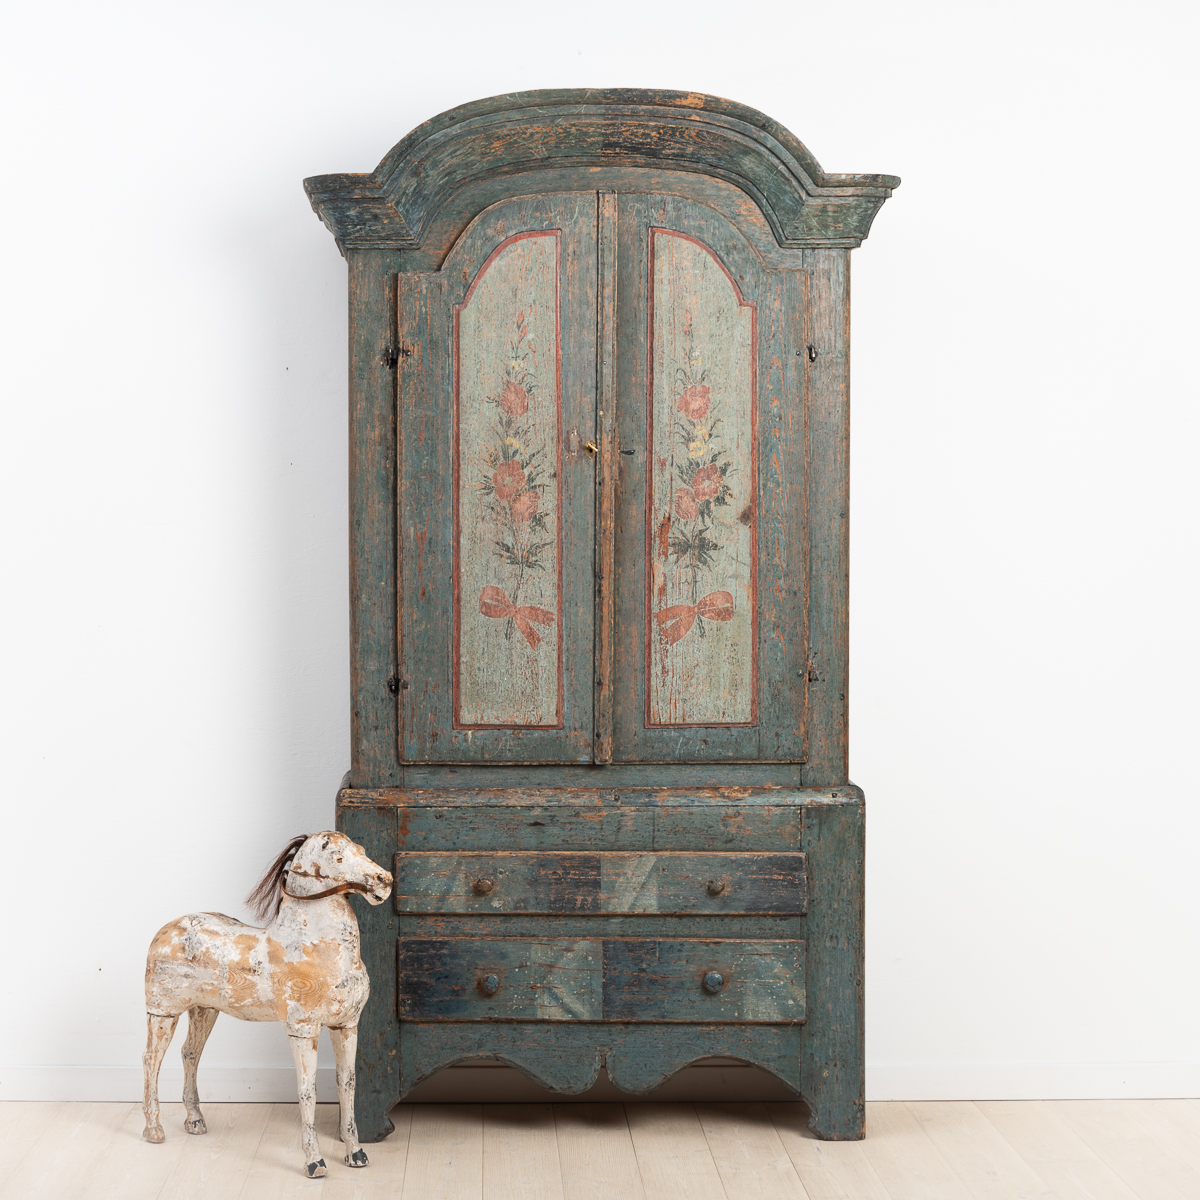 Rococo cabinet from Jämtland, northern Sweden. Dry scraped to the original paint with marbled drawers and doors with flowers.